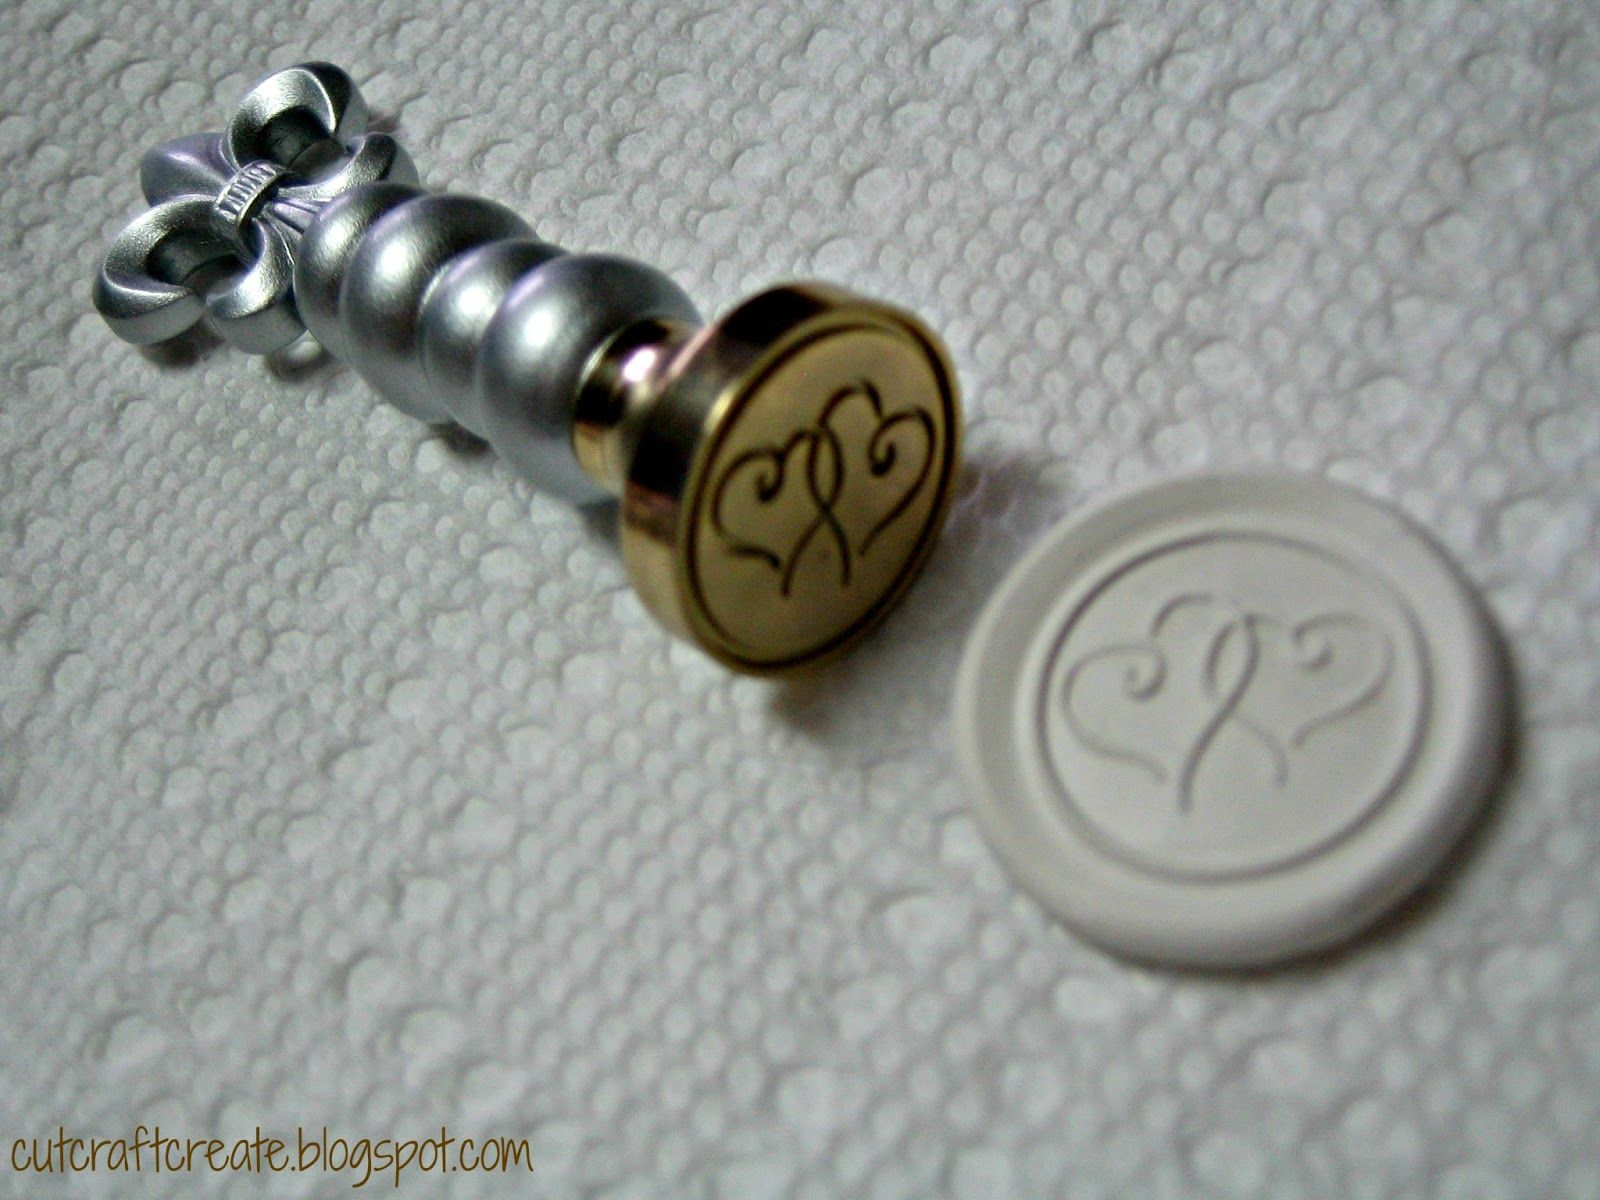 Jewelry Making with a Wax Seal Stamp & Clay! Jewelry